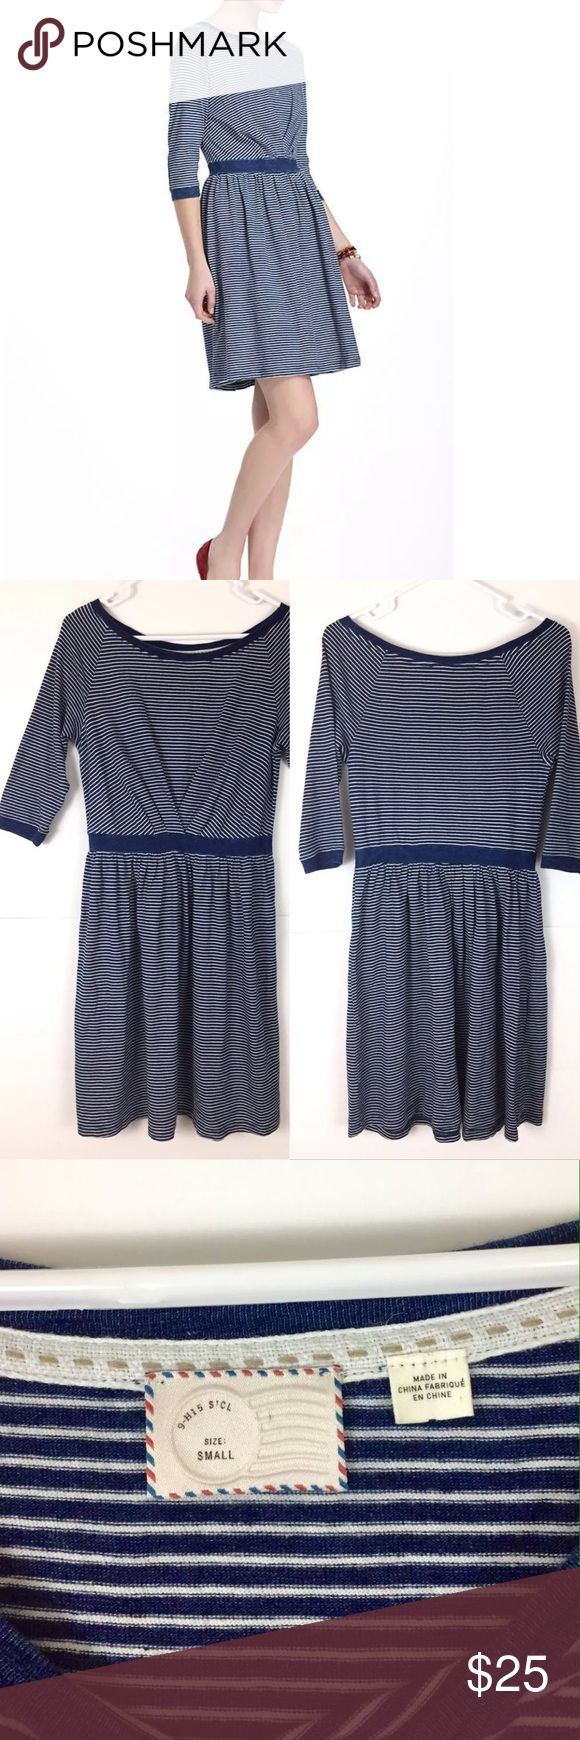 Anthropologie Postmark Blue White Striped Dress Anthropologie Postmark Patched Racquet Dress - Sz S  Made of cotton in a navy blue (with an almost denim like look) and white striped pattern. Features band at waist, elbow patches, and pullover styling.  Pre-owned with normal wear and no apparent flaws. Anthropologie Dresses